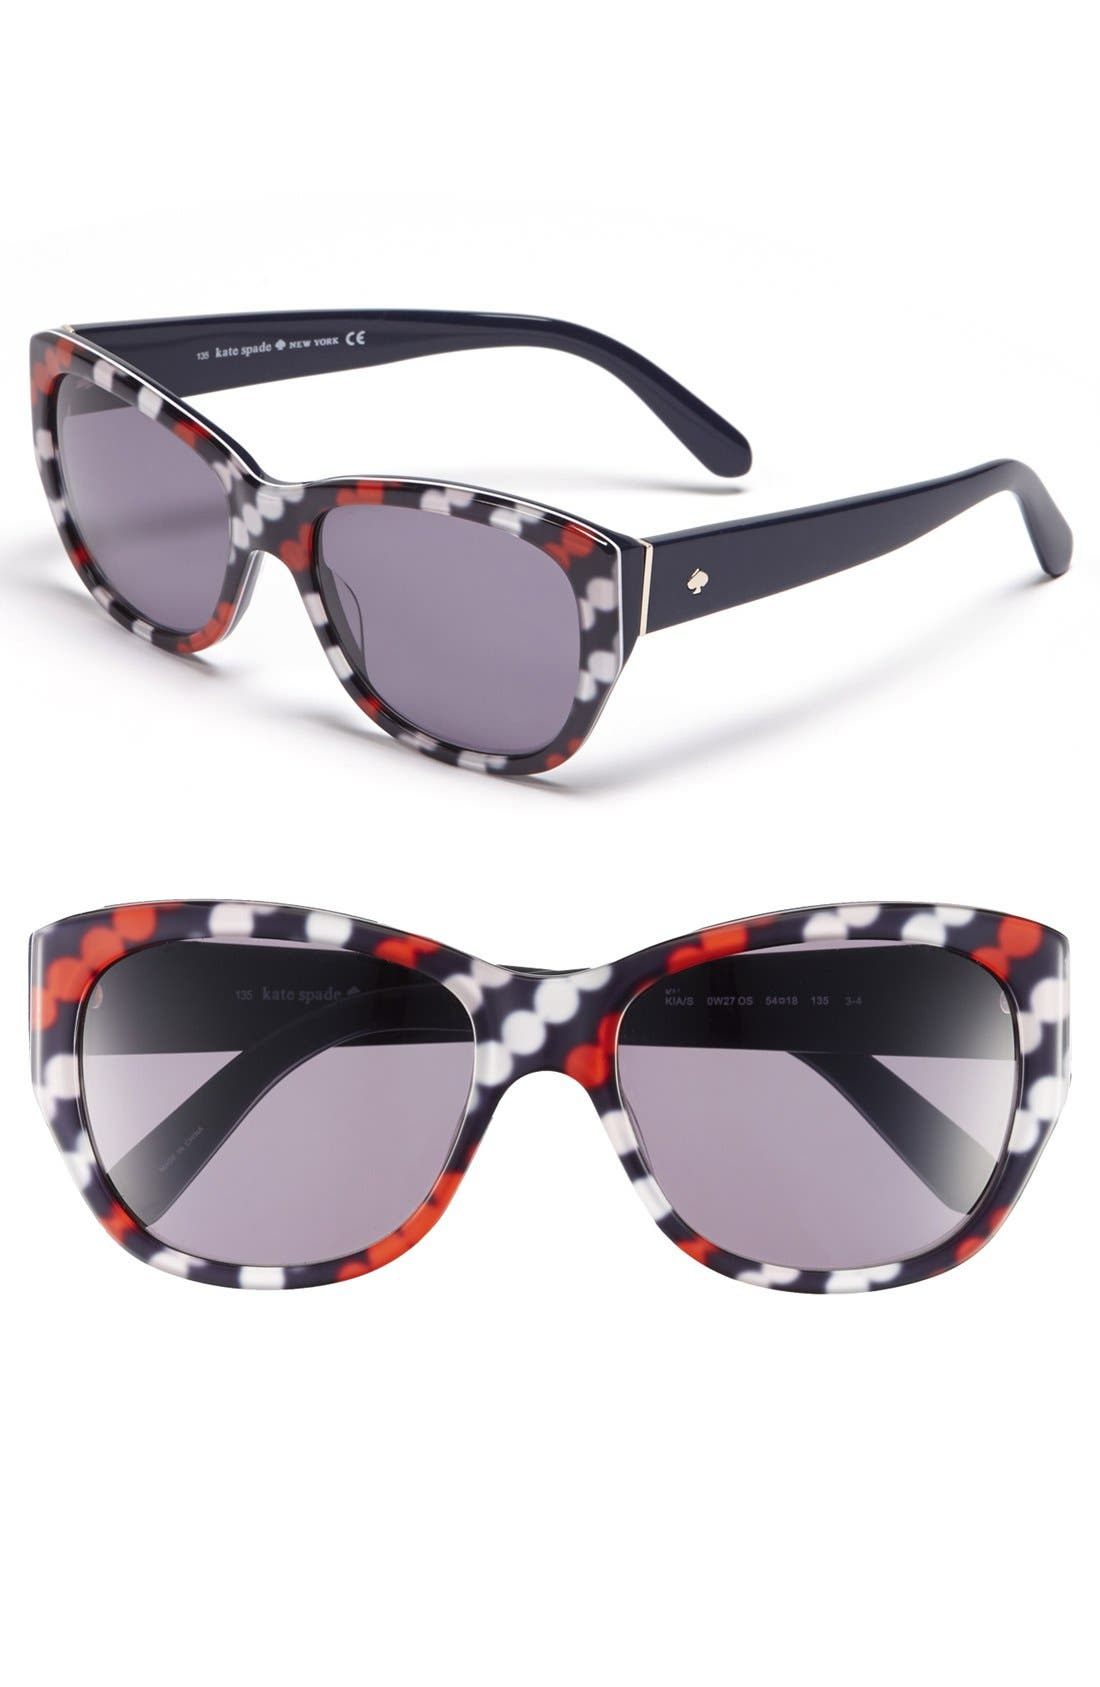 Main Image - kate spade new york 'kia' 54mm cat eye sunglasses